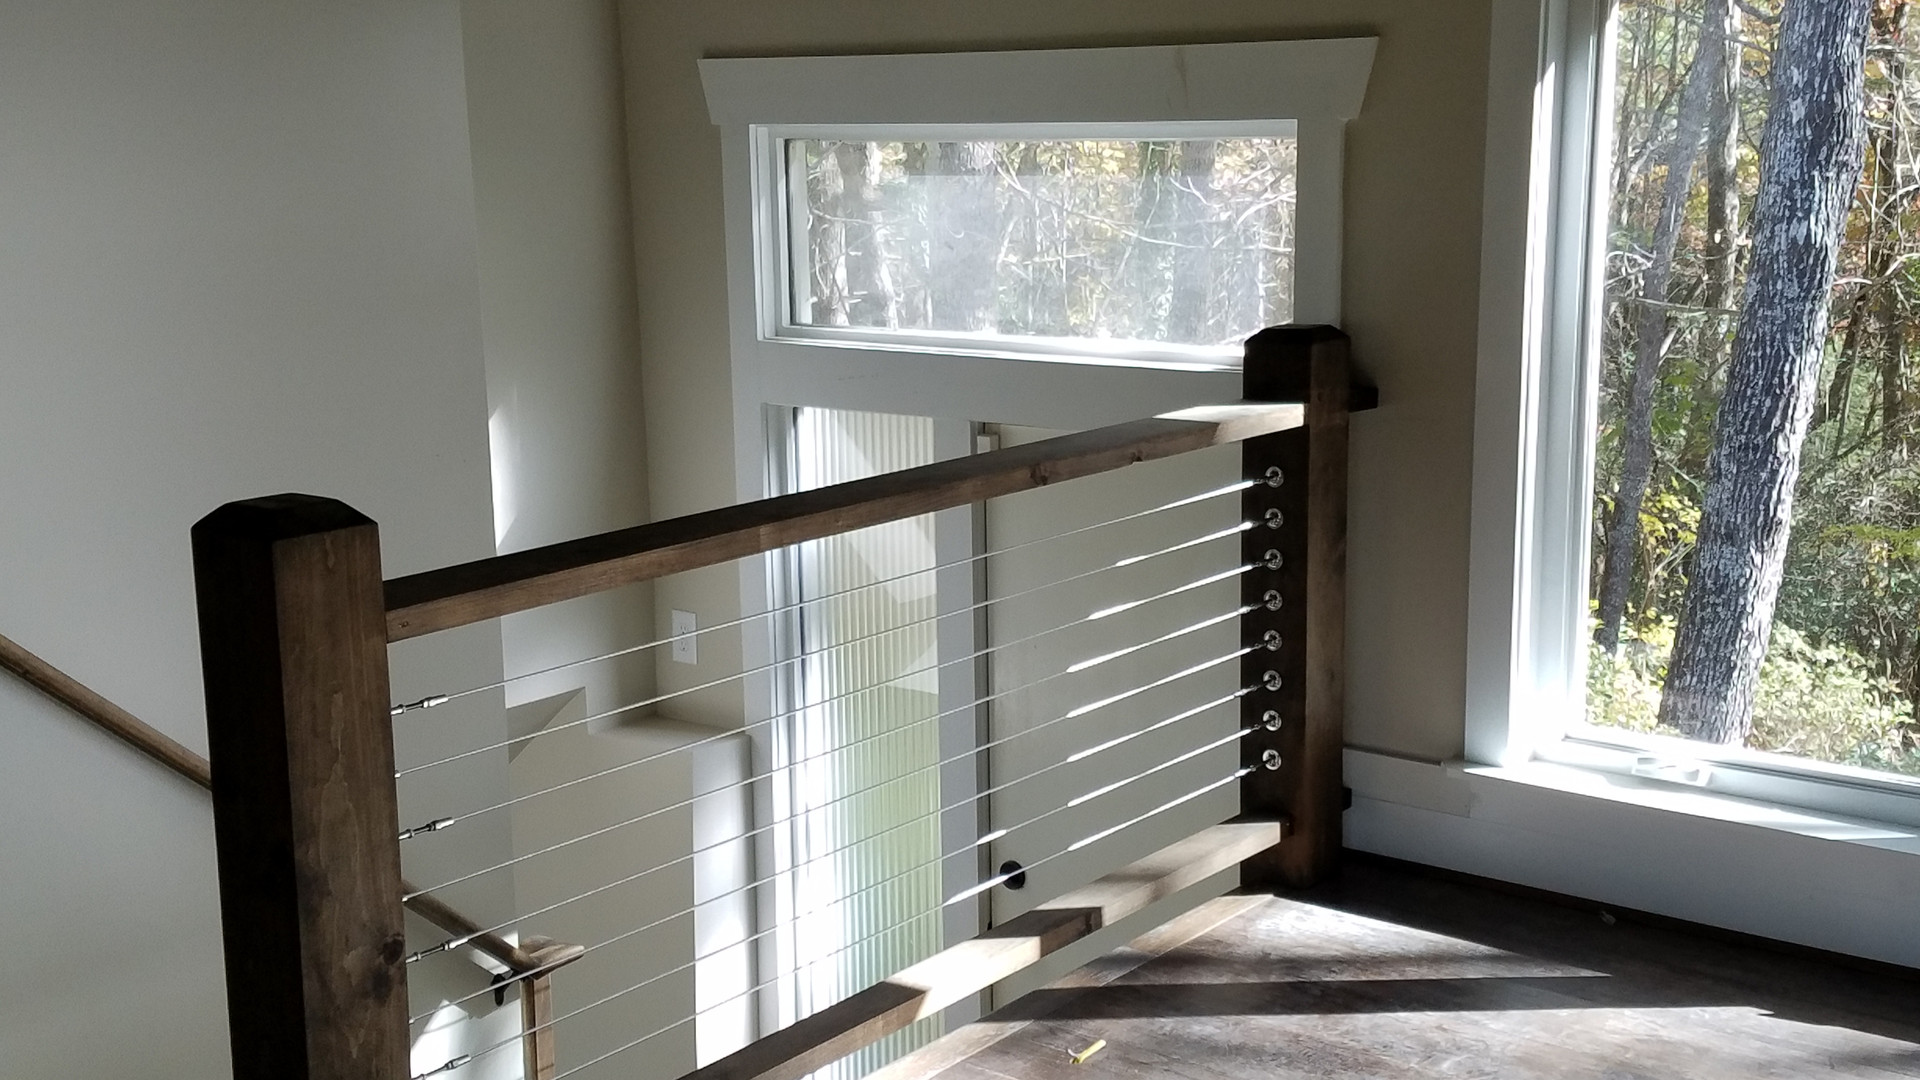 Post & Cable Handrails